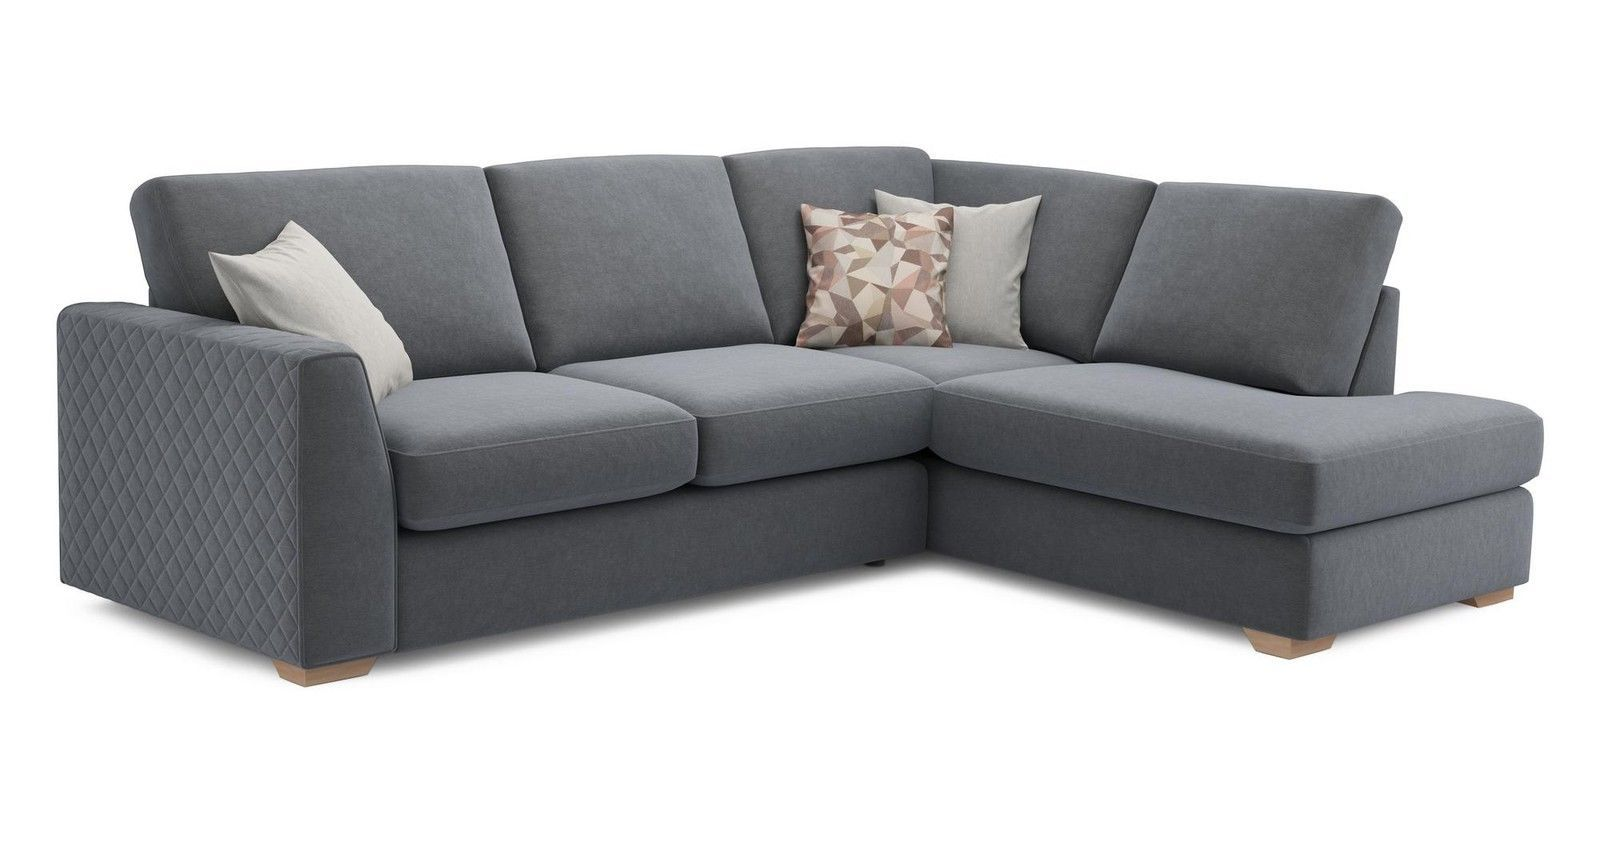 Garden Furniture Corner Sofa Ebay Dfs Eleanor Graphite Fabric Foam Left Arm Facing Open End Corner